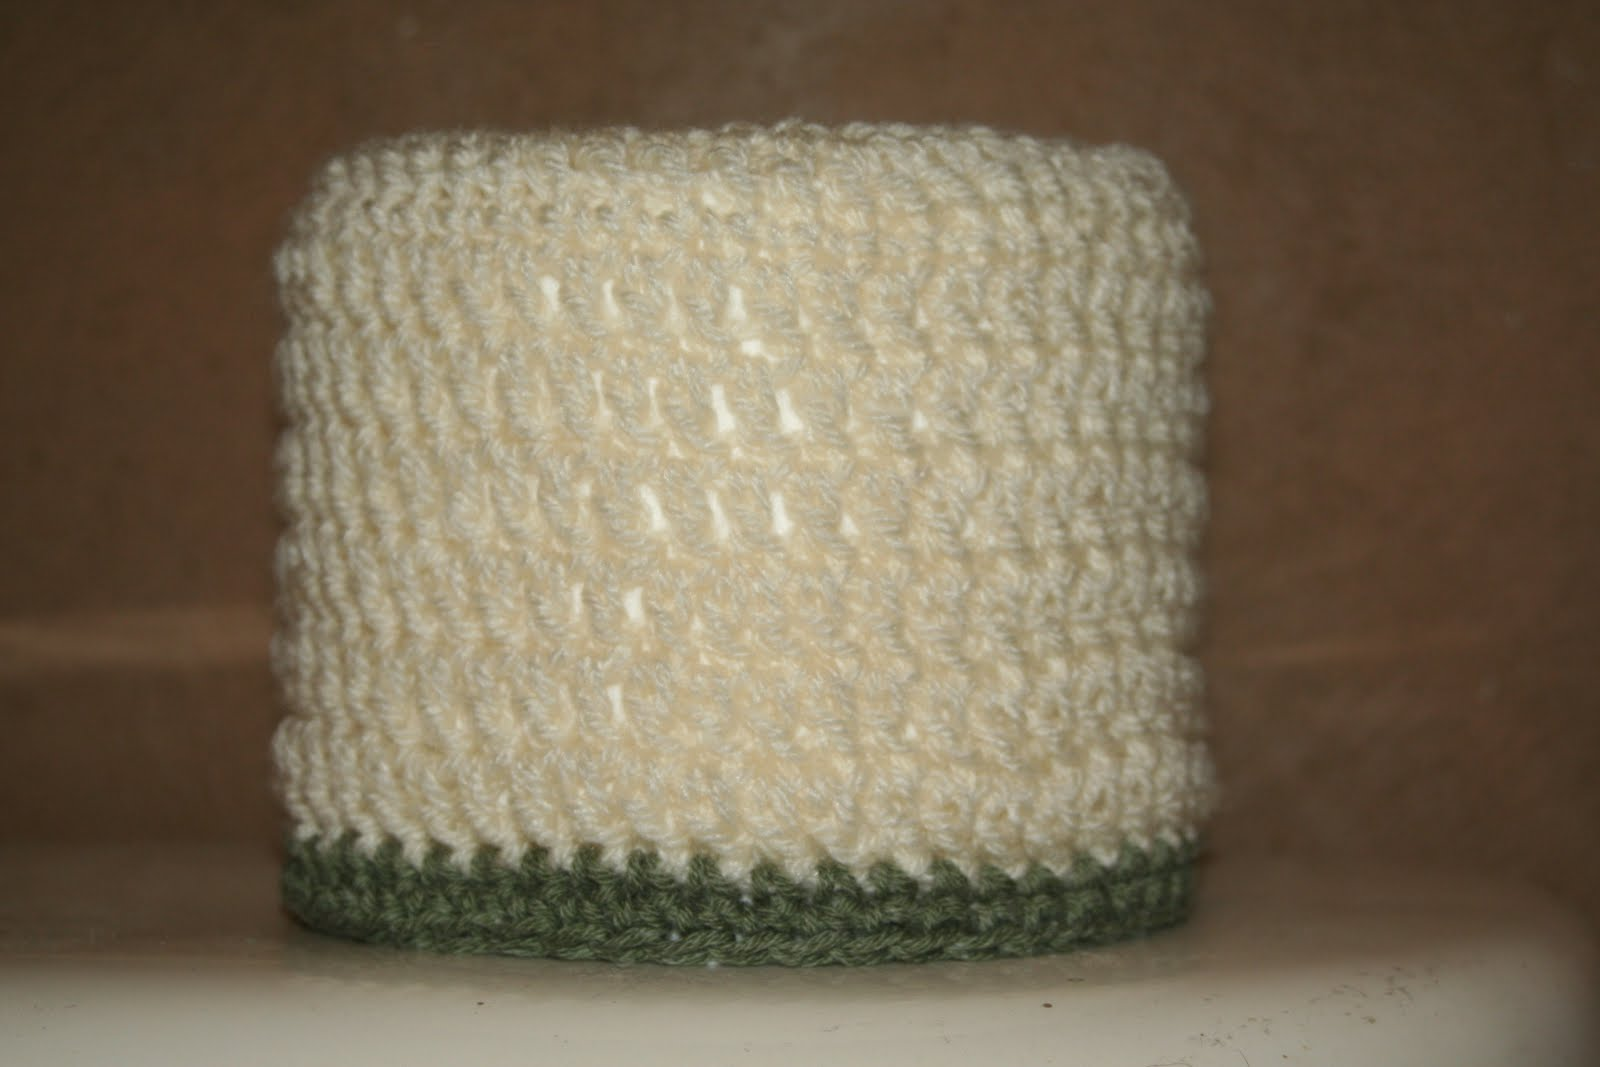 Free Crochet Patterns For Toilet Tissue Holders : Crafty Kate Going Crazy: Simple Toilet Paper Roll Cover ...